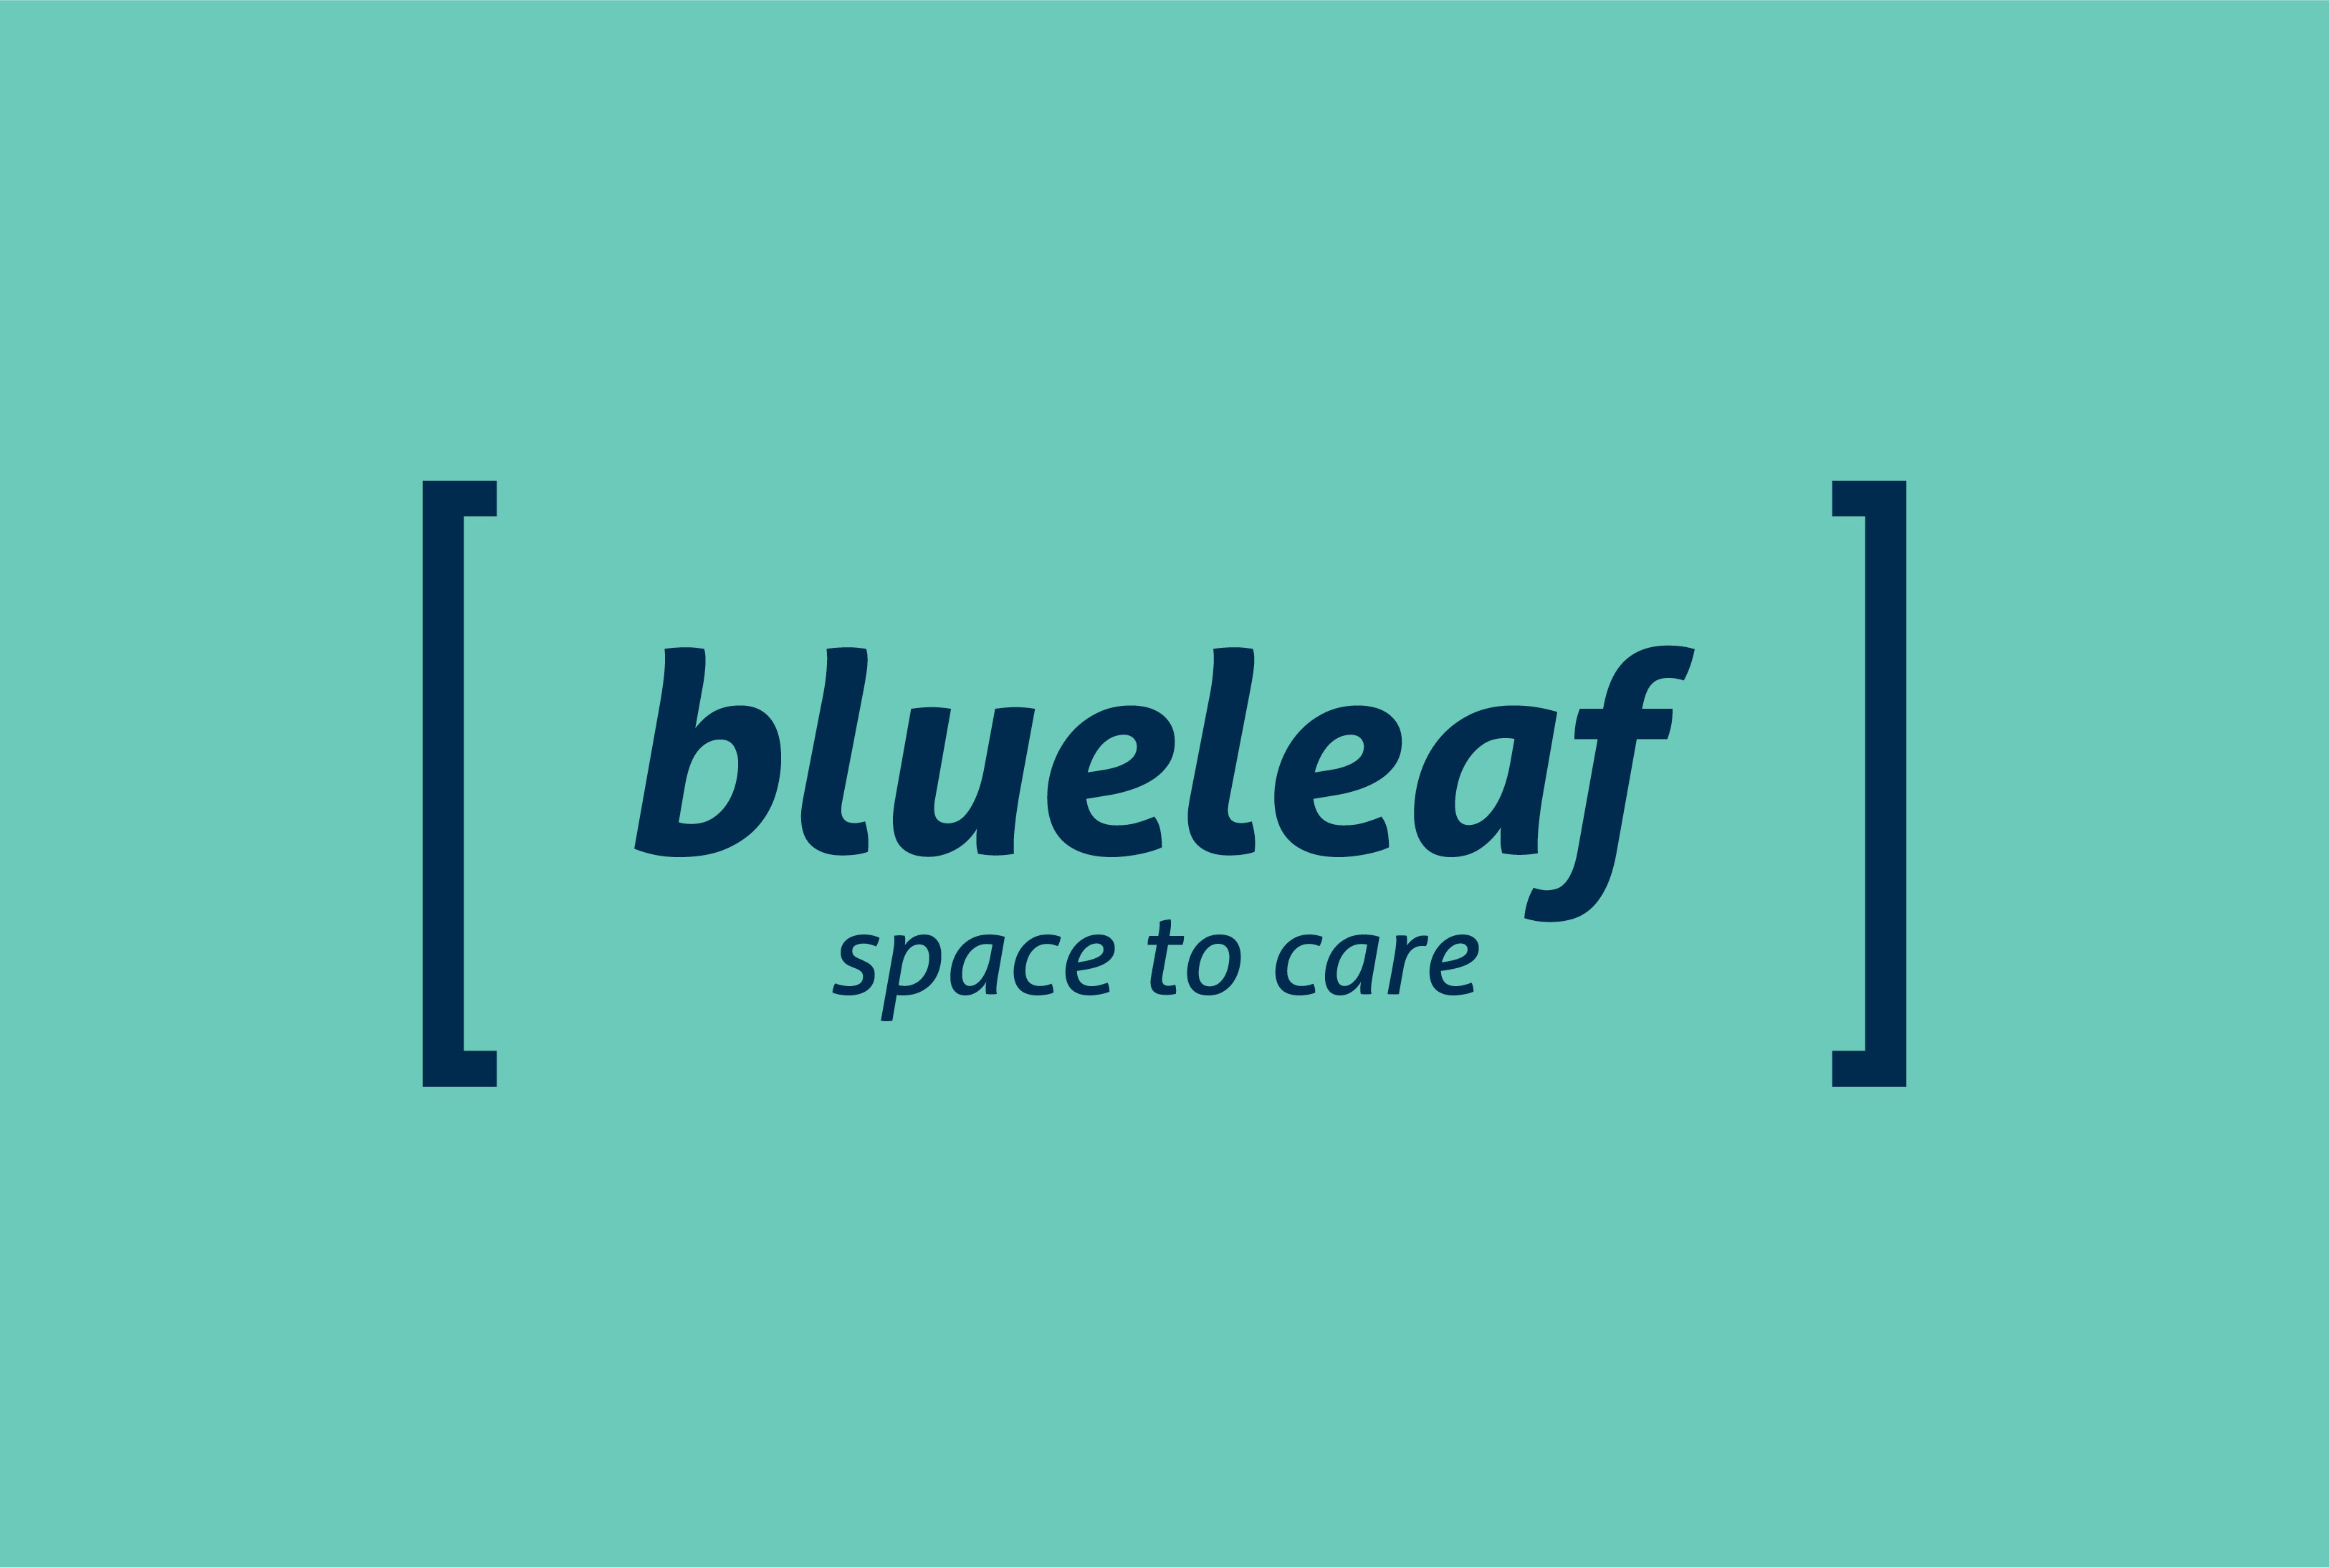 BLUELEAF_Cover_1560x1050pxb